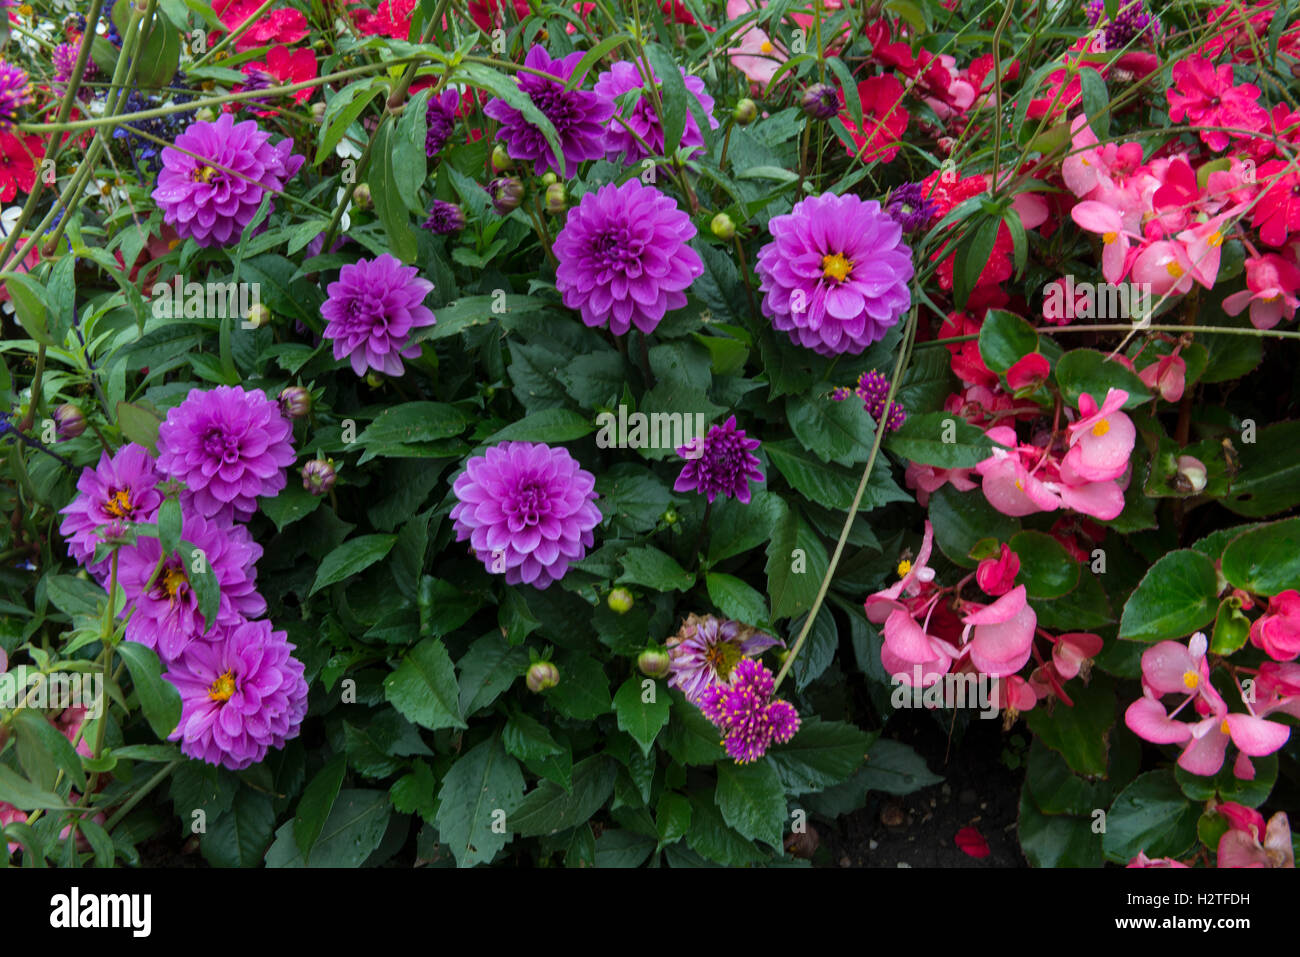 Mix of Dahlia and Begonia flowers, closeup, medieval historic village of Yvoire, Haute-Savoie, France - Stock Image